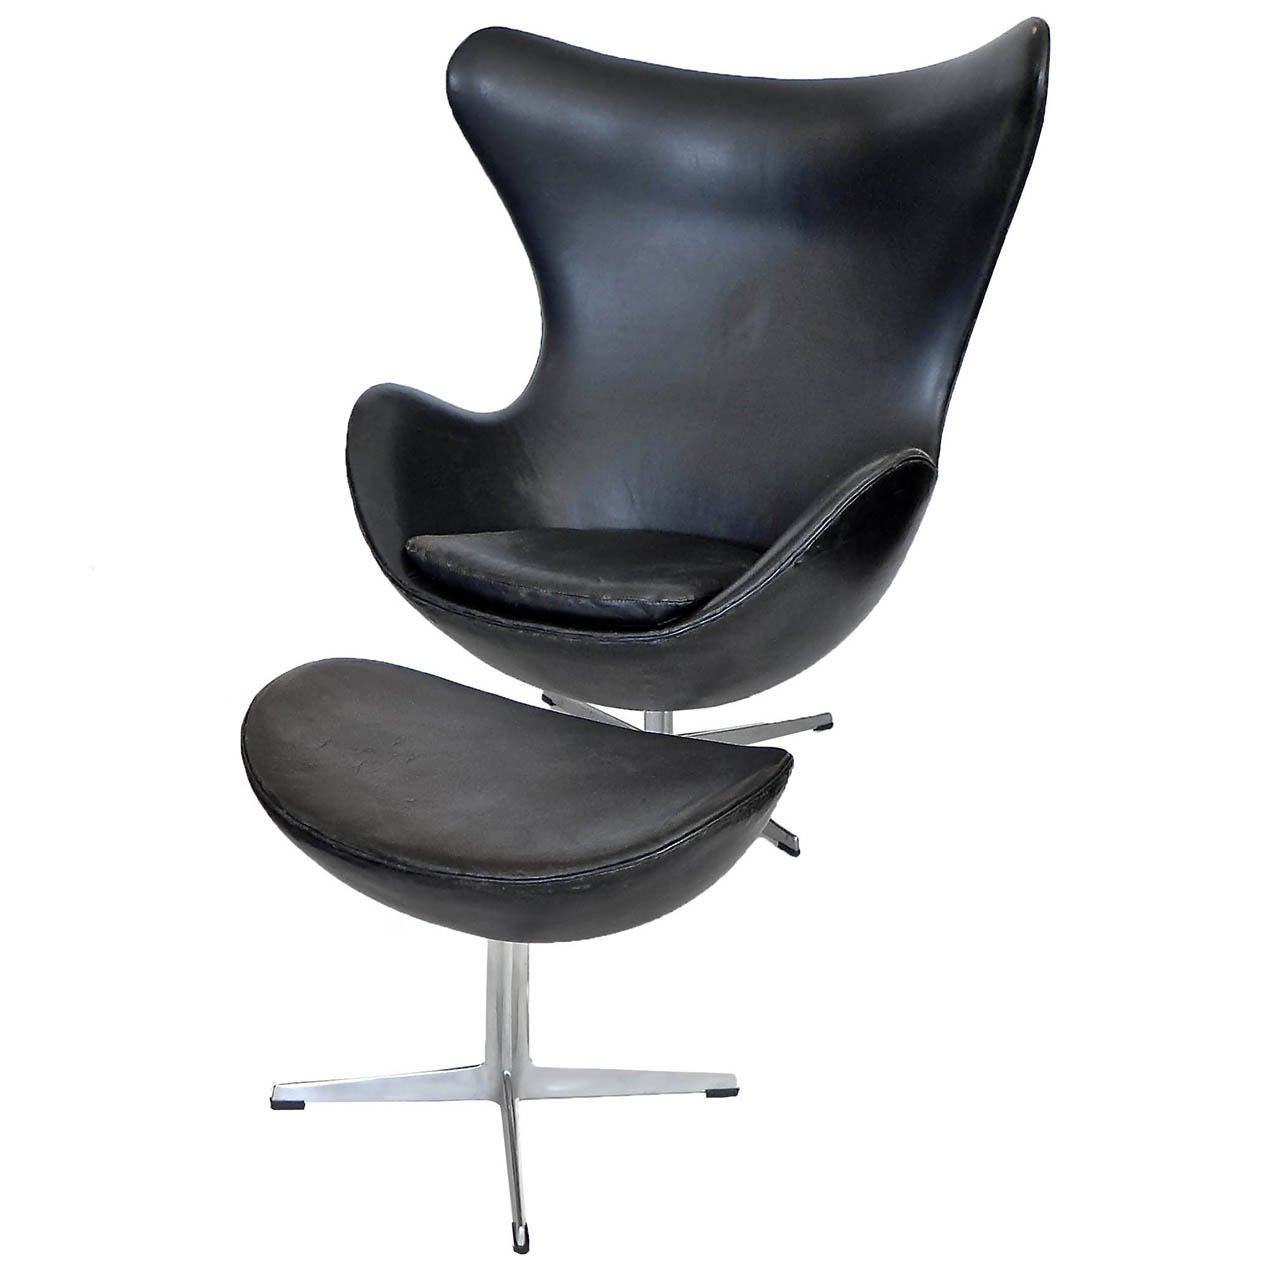 Arne jacobsen egg chair leather - Early Egg Chair And Ottoman By Arne Jacobsen With Original Black Leather